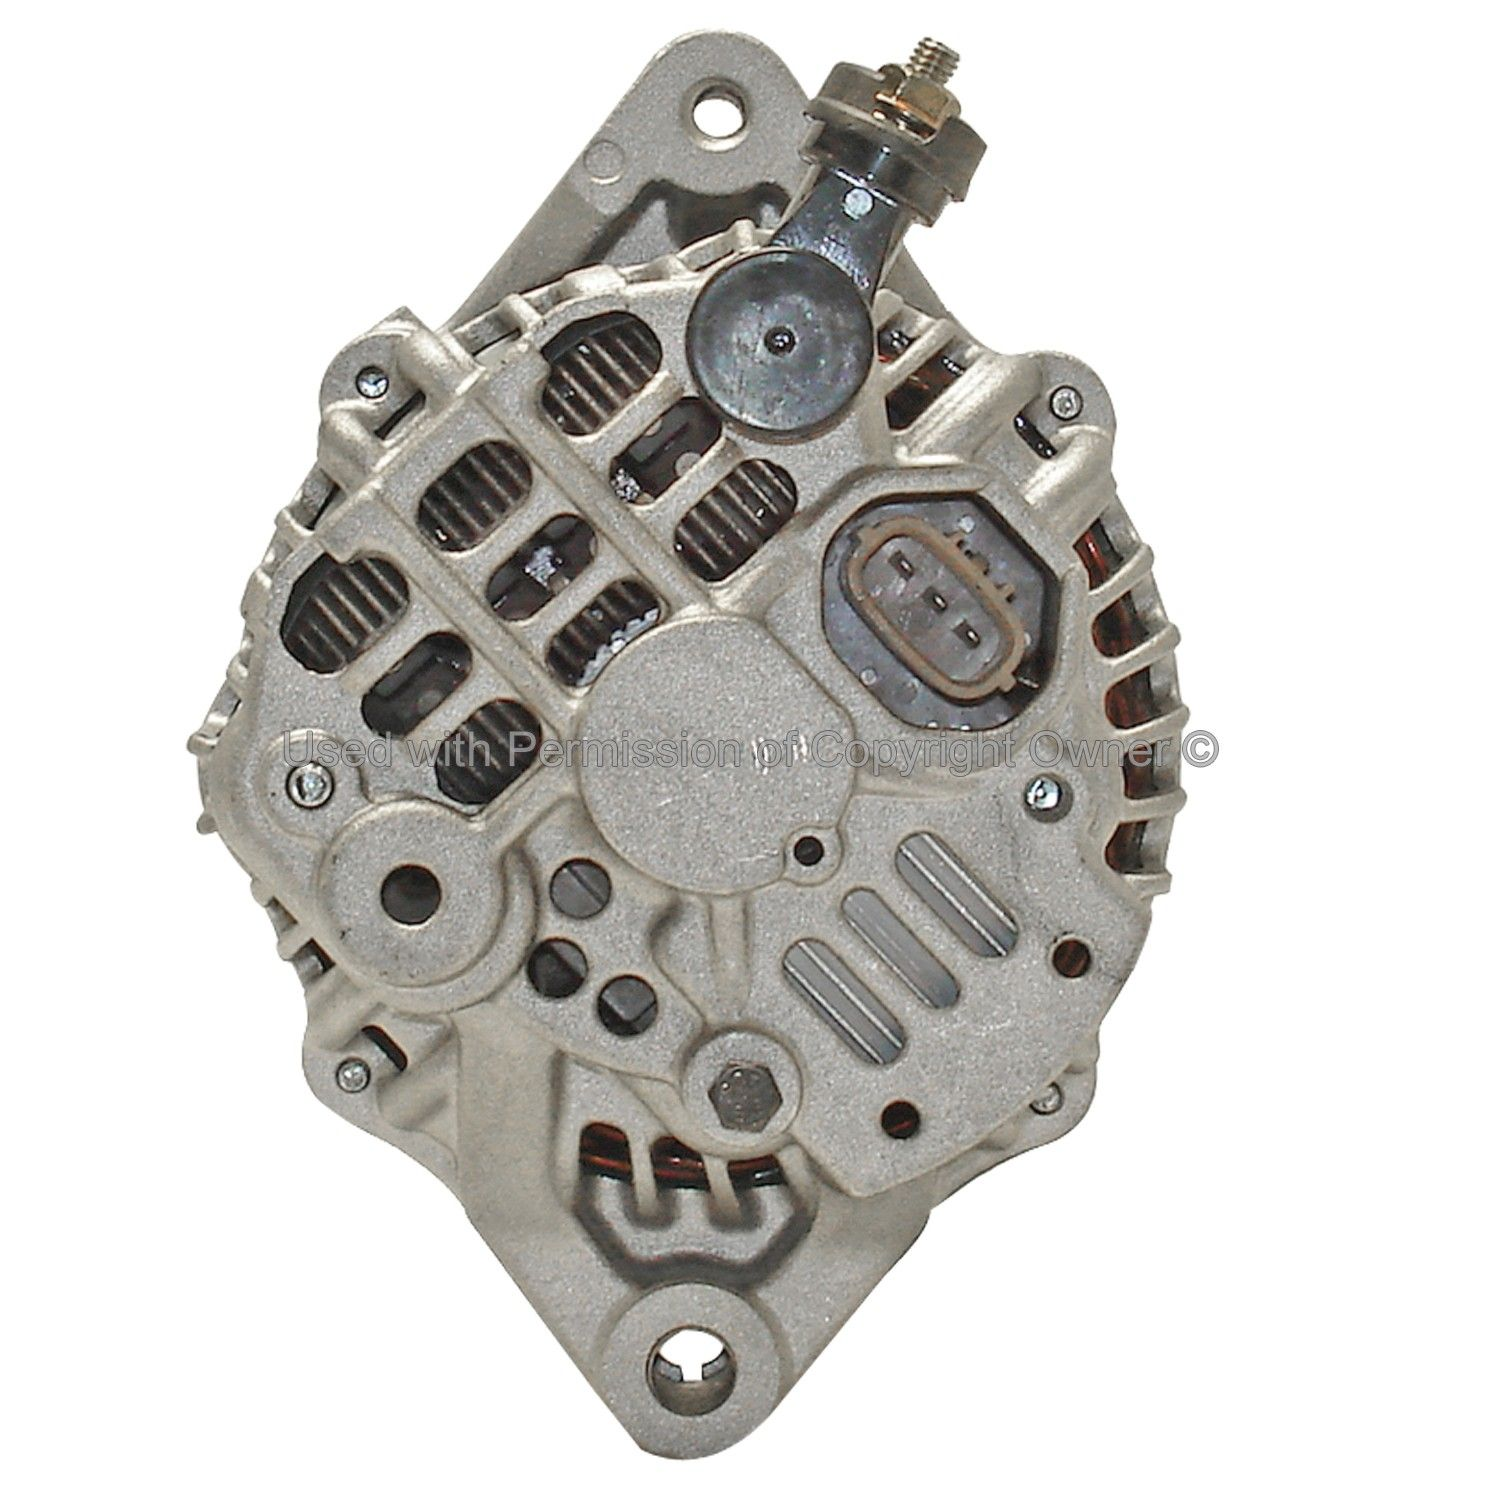 1999 Chevrolet Tracker Alternator 4 Cyl 2.0L (MPA 13781) with 5S pulley .